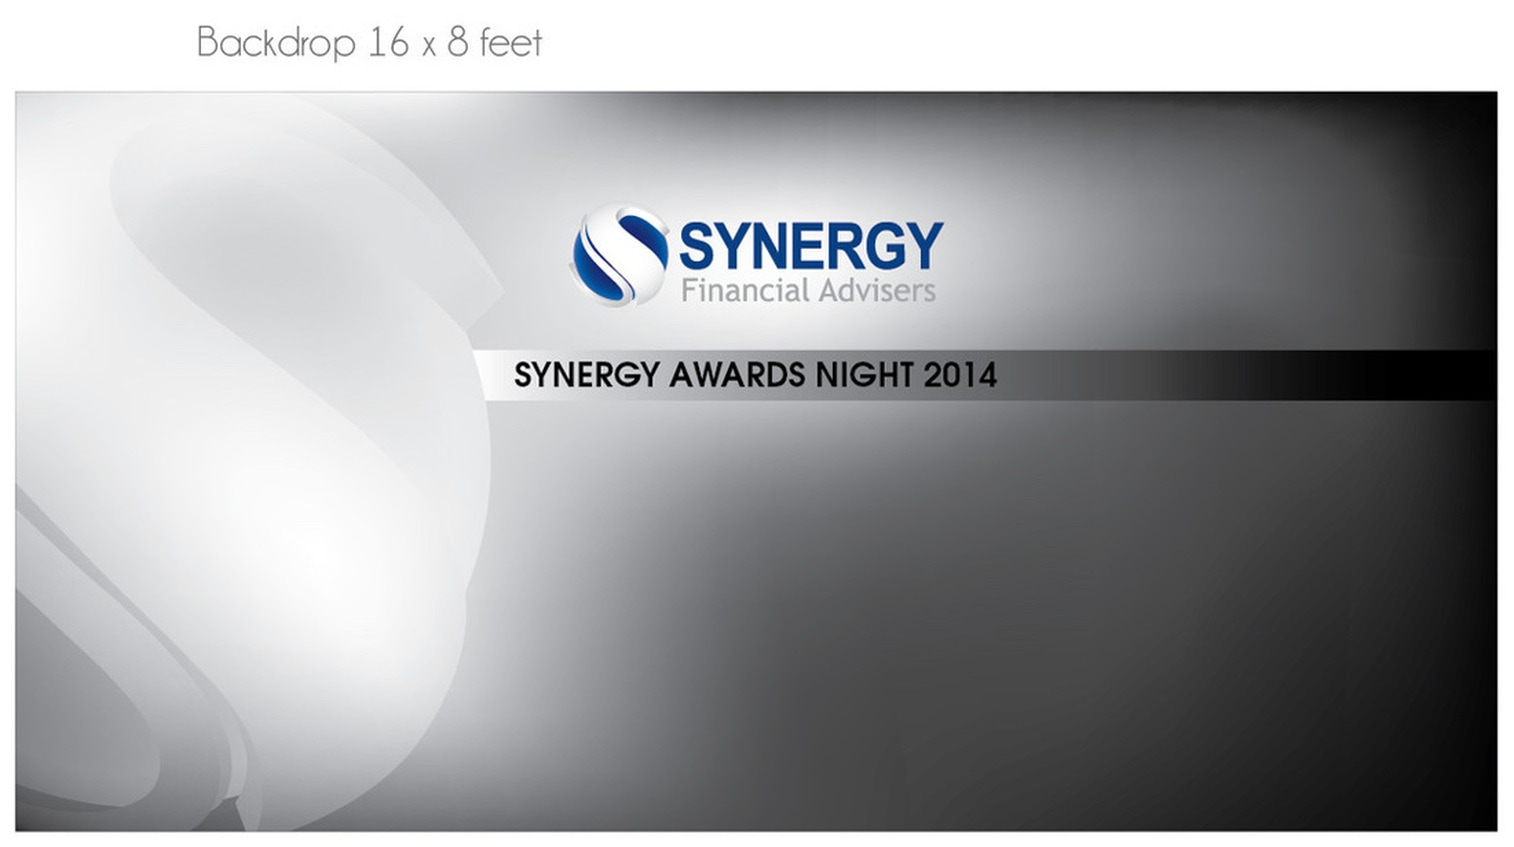 Synergy Backdrop Design